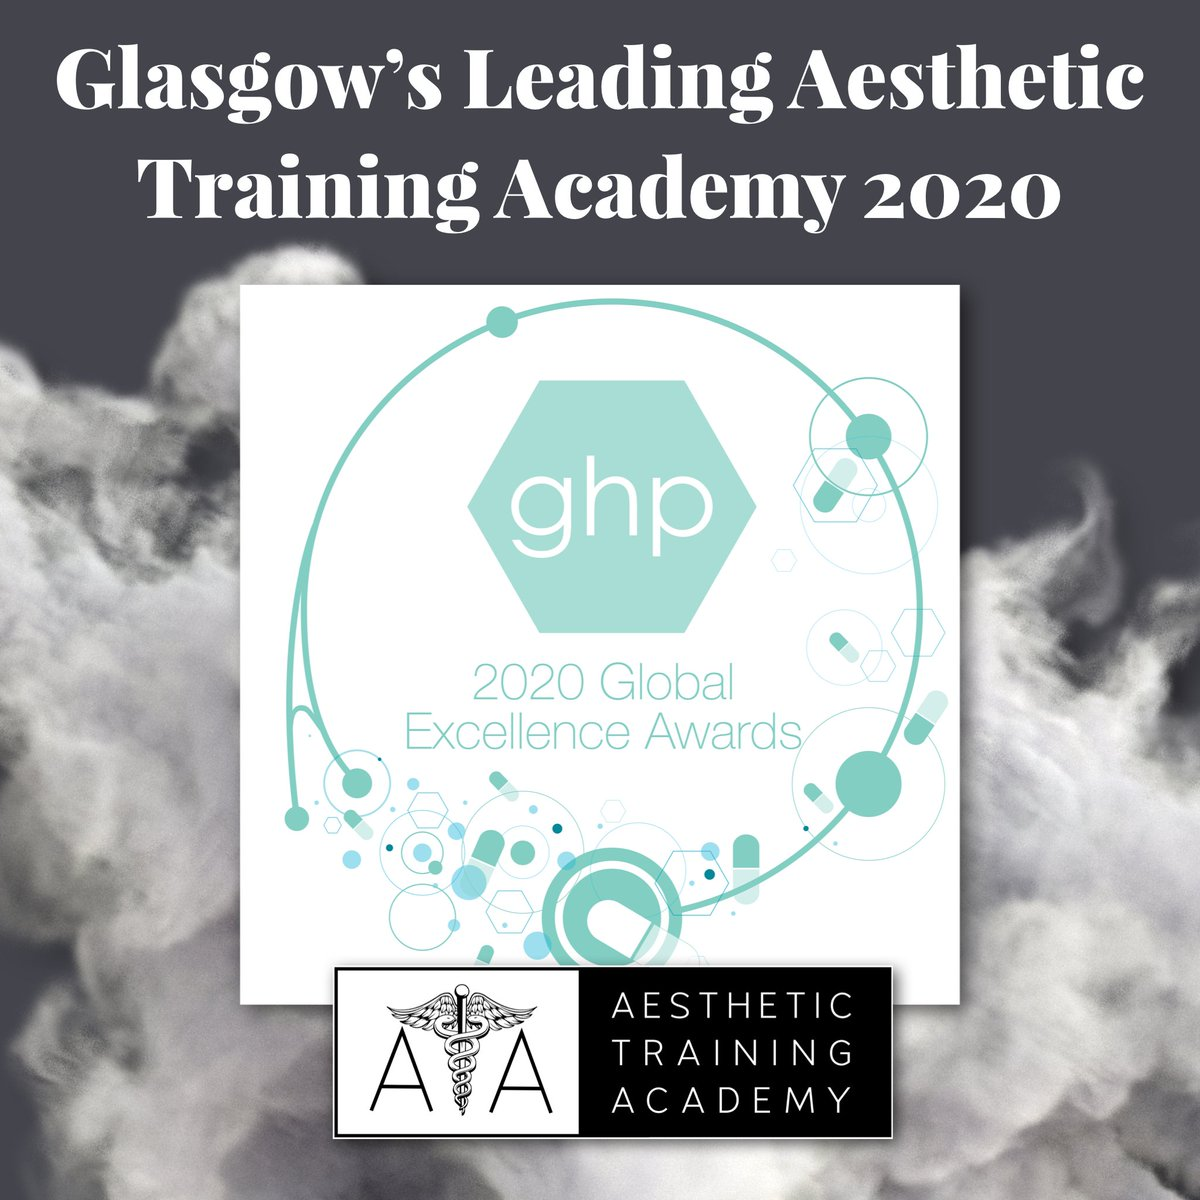 """test Twitter Media - The Aesthetic Training Academy is delighted to have been awarded """"Glasgow's Leading Training Academy - 2020' in the Global Health & Pharma Global Excellence Awards!  To find out more about our courses visit https://t.co/CiLfqw1q9Q https://t.co/LbwnlQGtU3"""